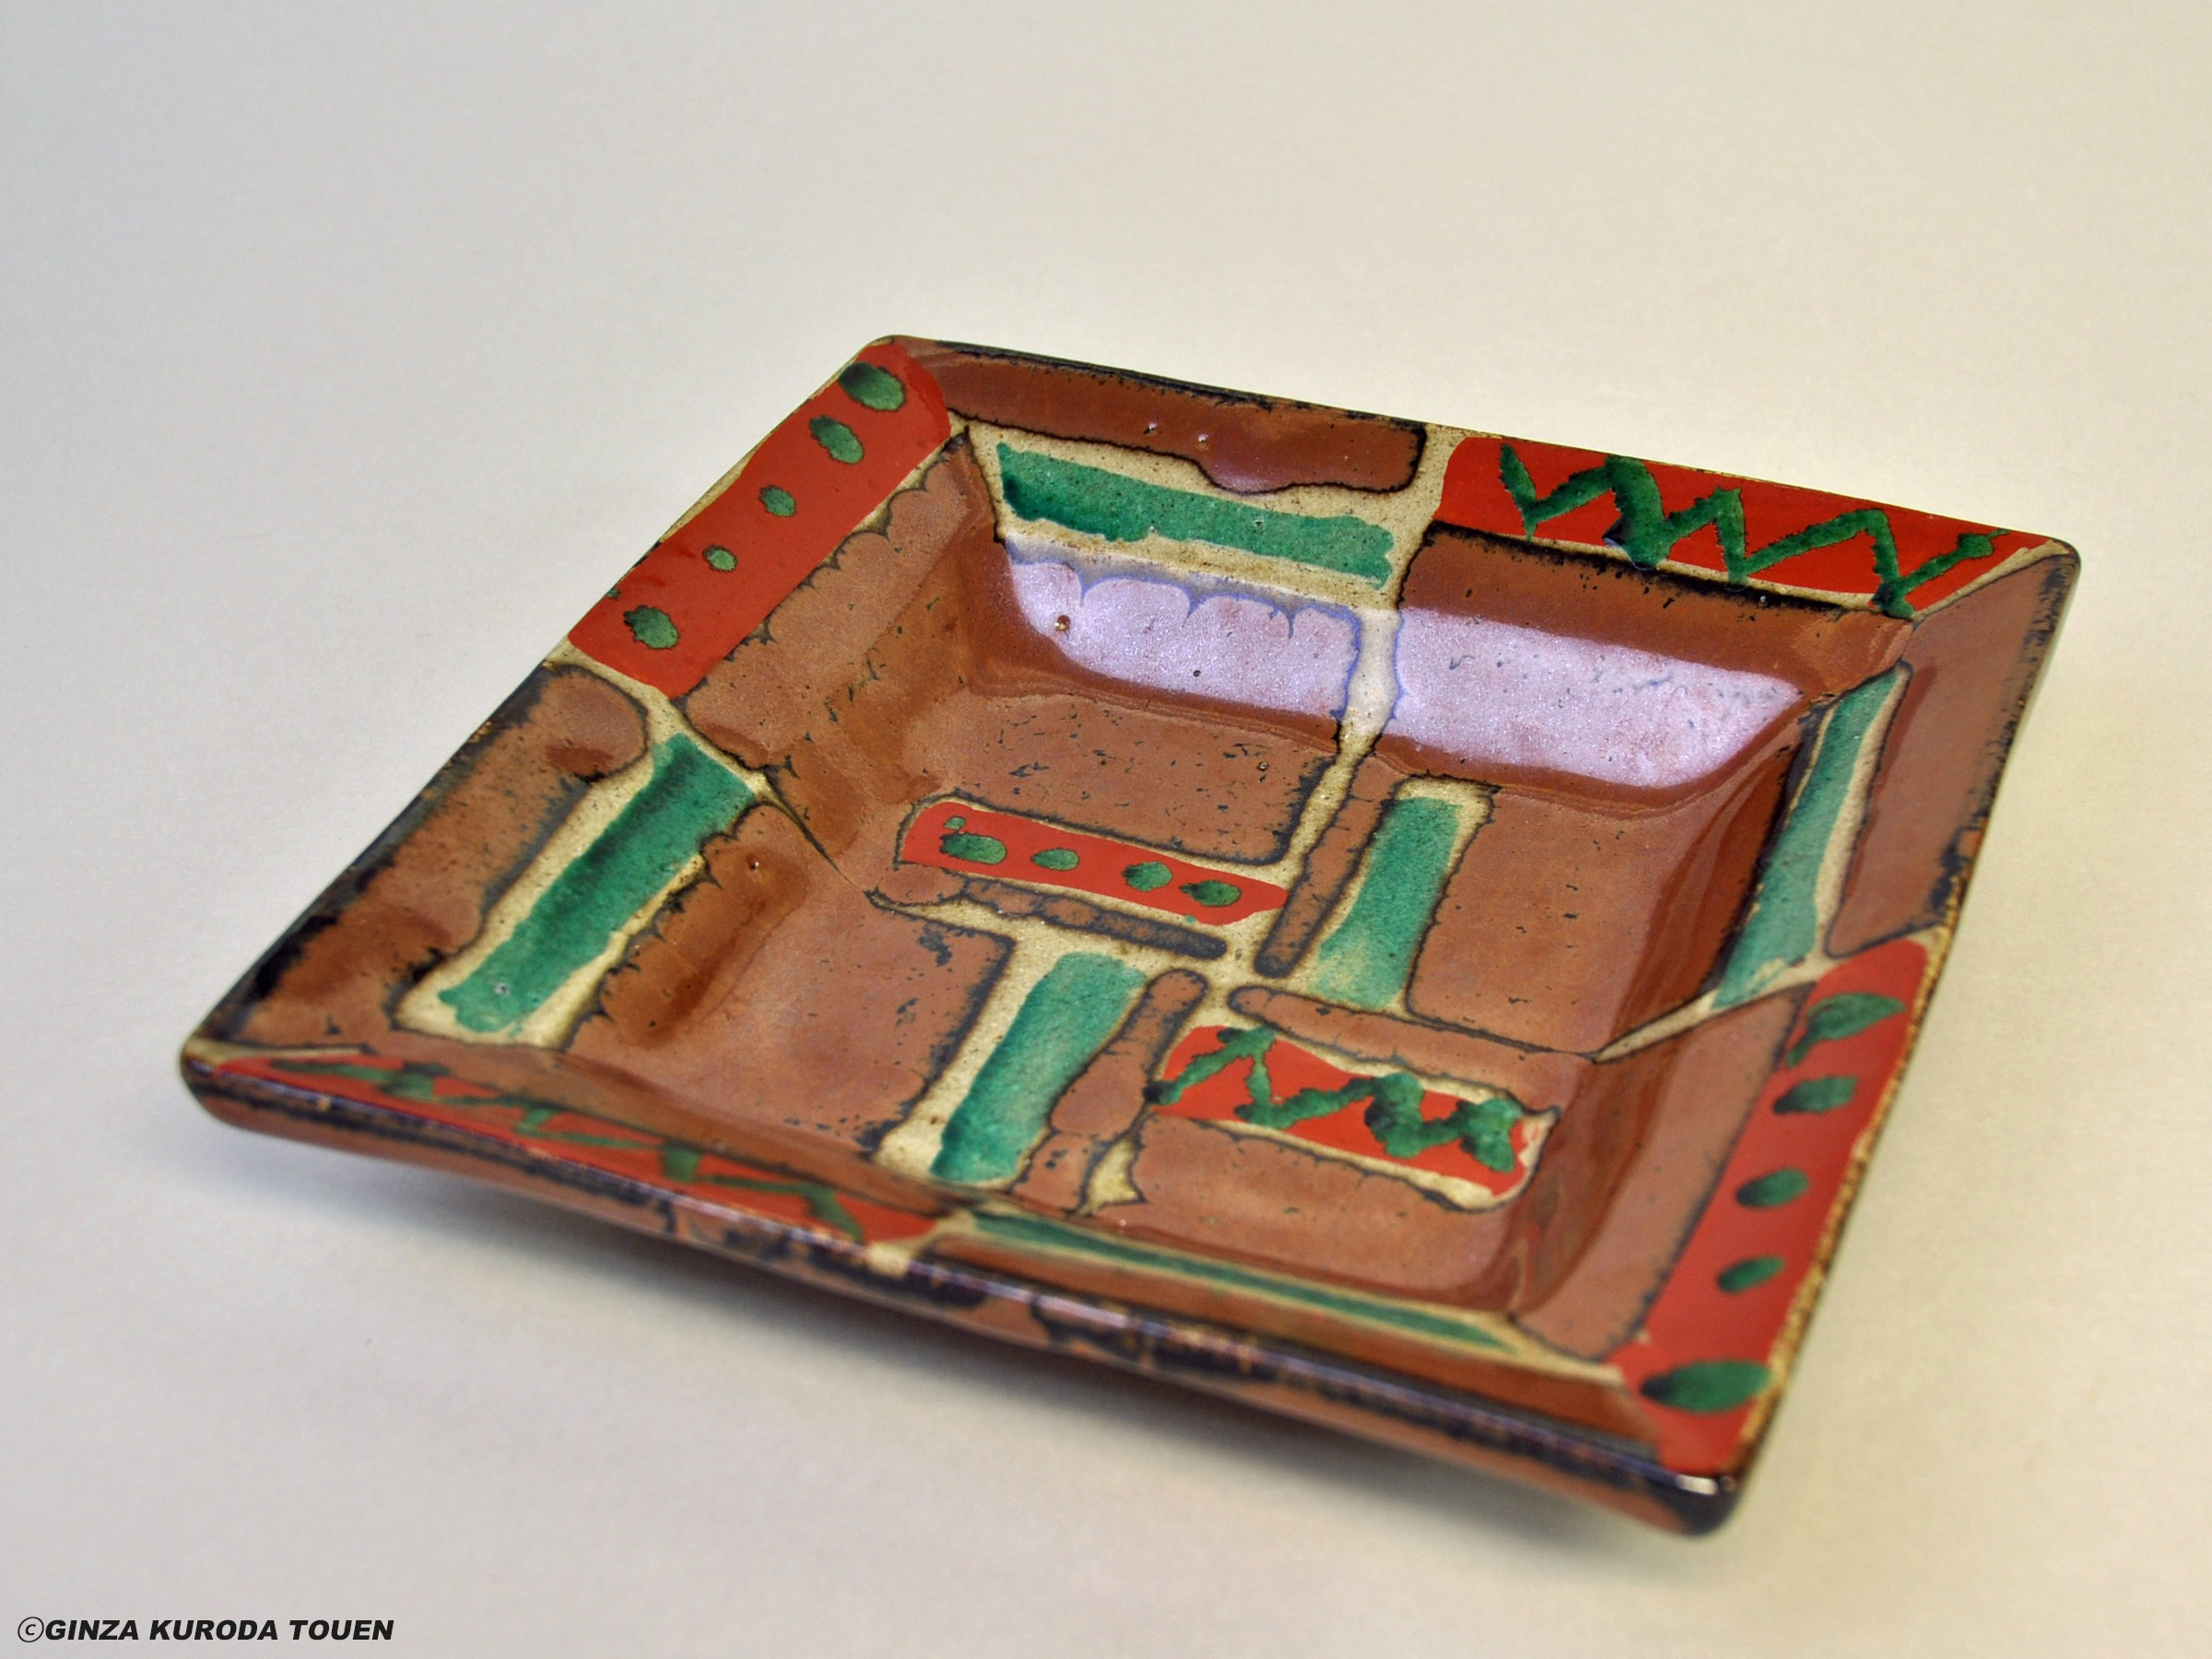 Shoji Hamada: Square plate, Kaki glaze with red and green painting